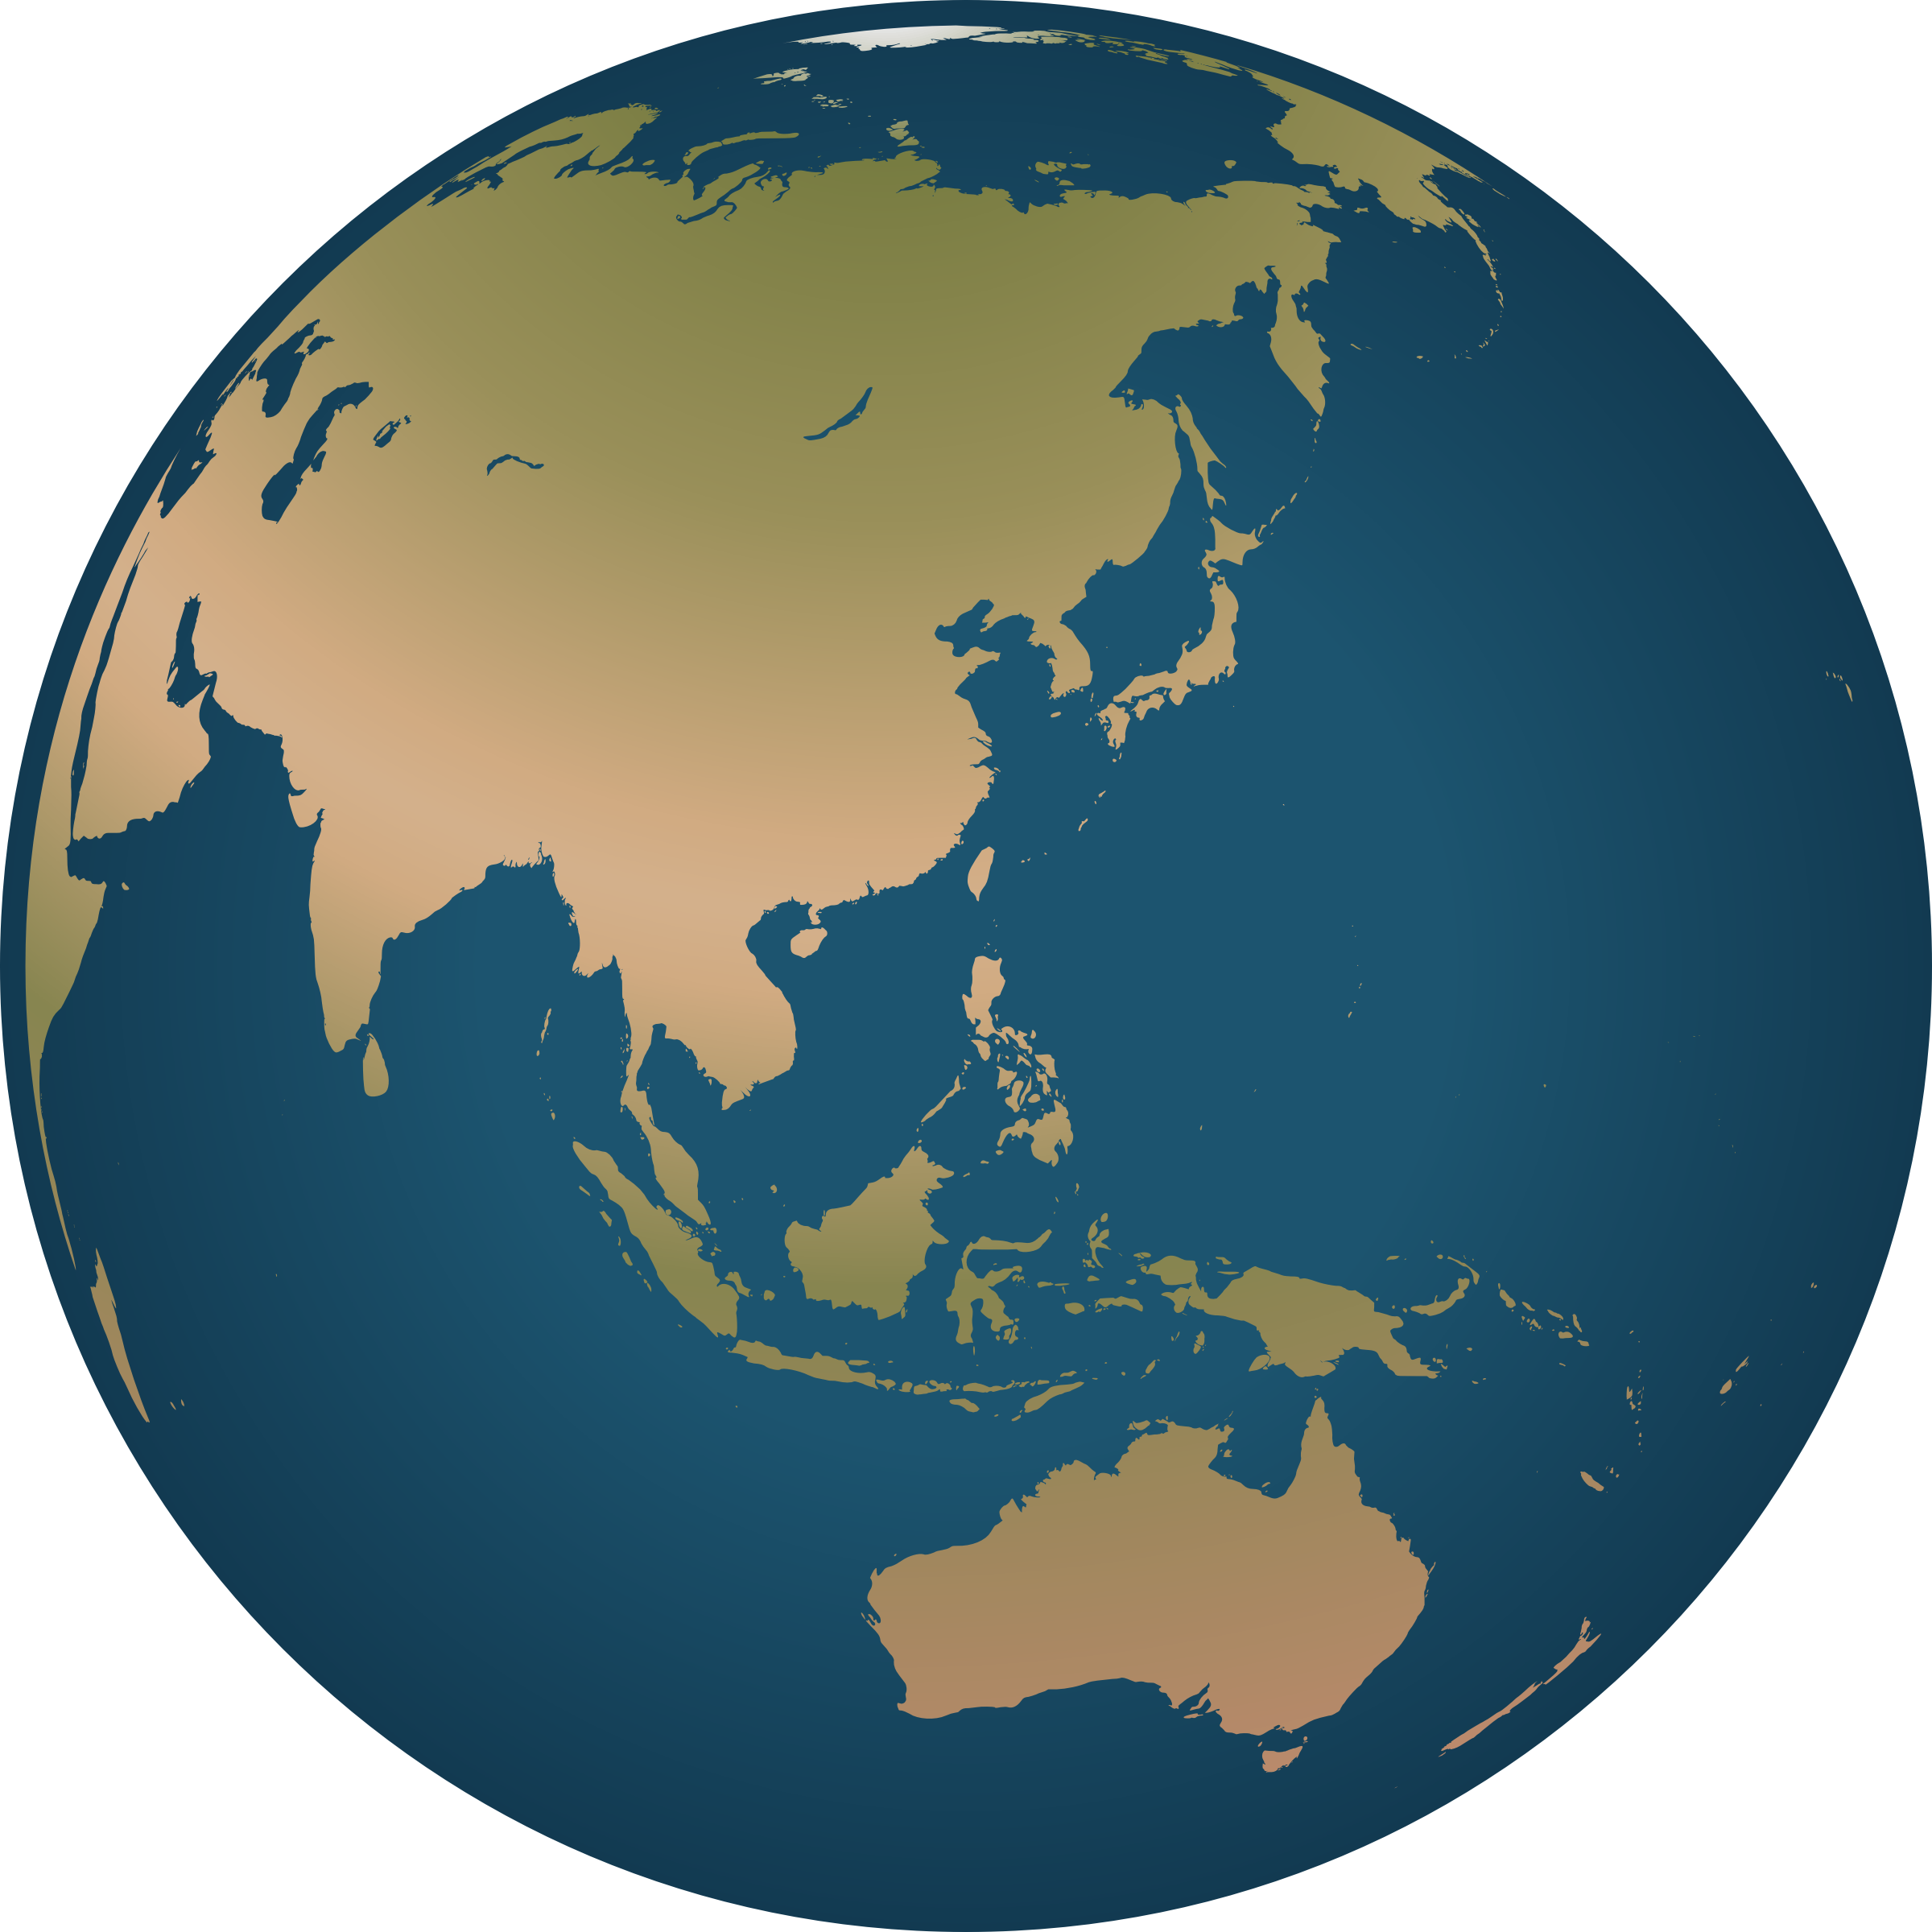 2400x2400 Clipart Globe Earth Images On Page 0 Yanhe Clip Art